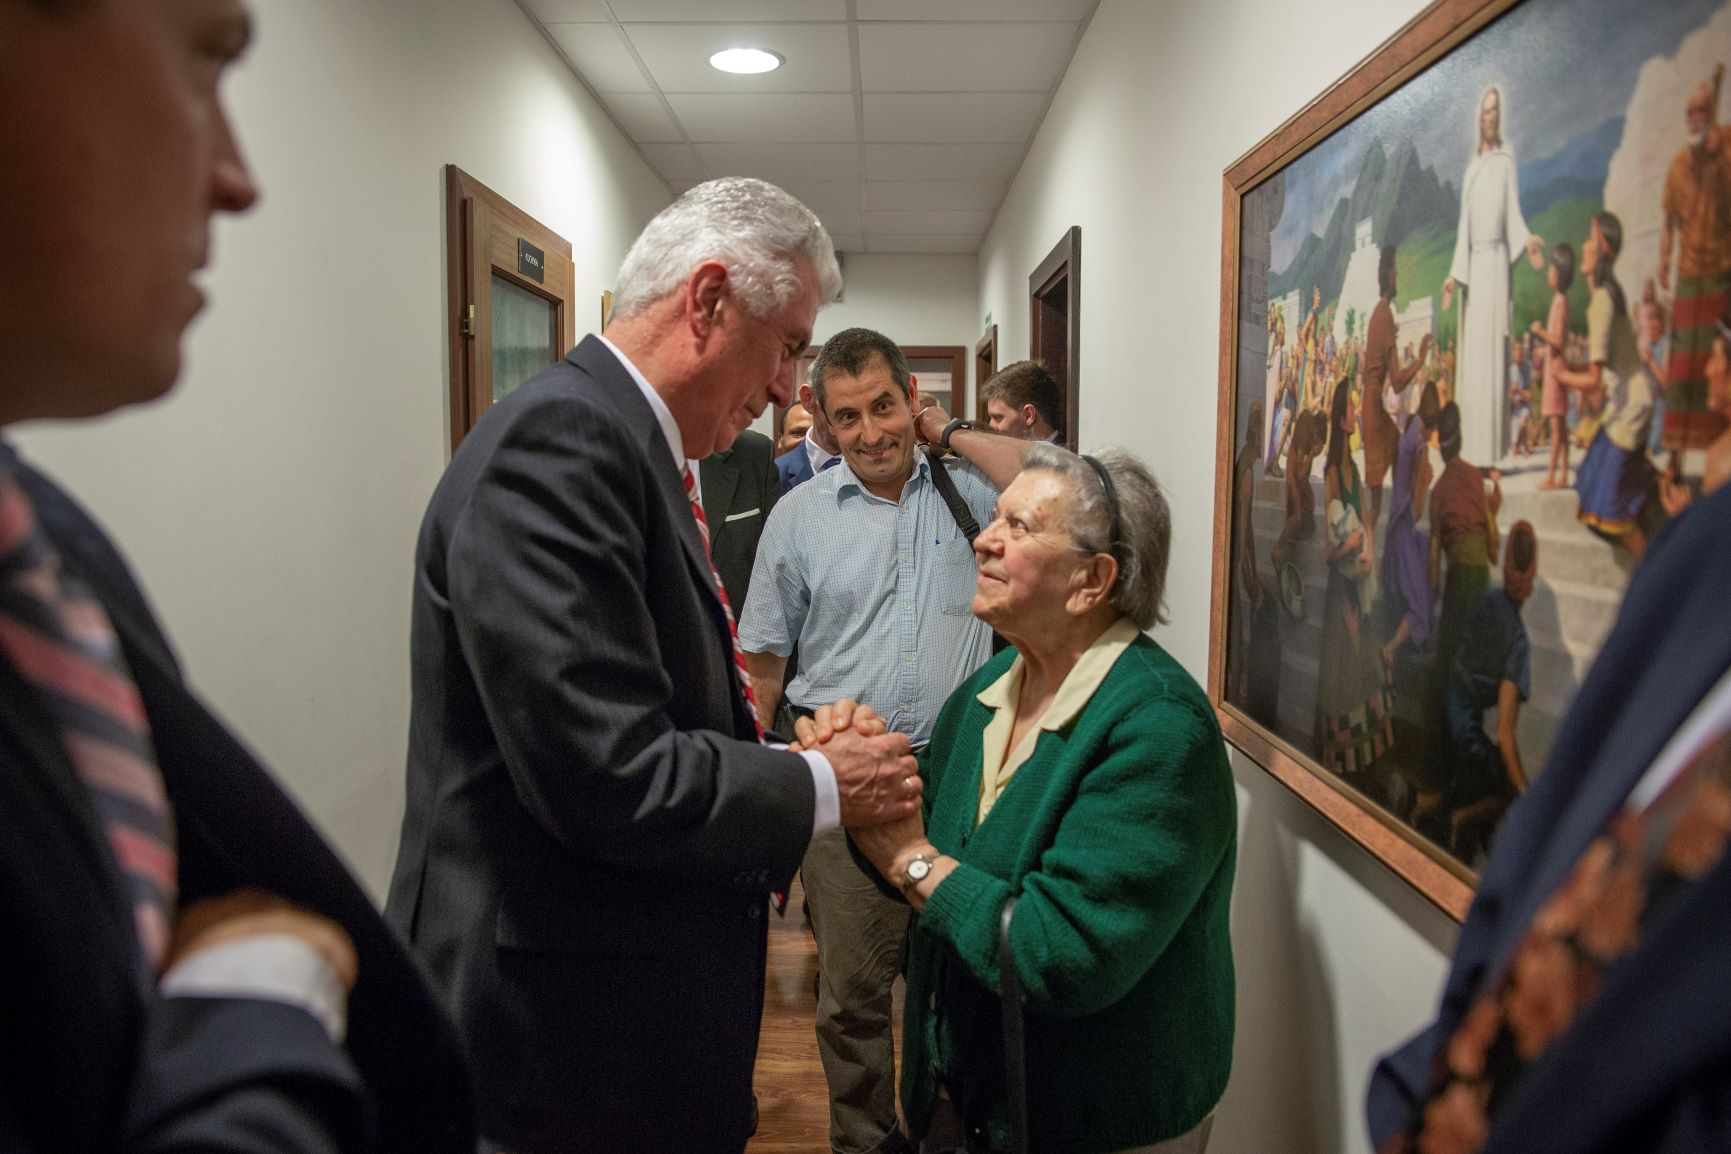 In Gdansk, Poland, for a meeting with branch members and missionaries of the Poland Warsaw Mission, Elder Dieter F. Uchtdorf of the Quorum of the Twelve Apostles stops to visit with a woman in a hallway on Sept. 17, 2018.